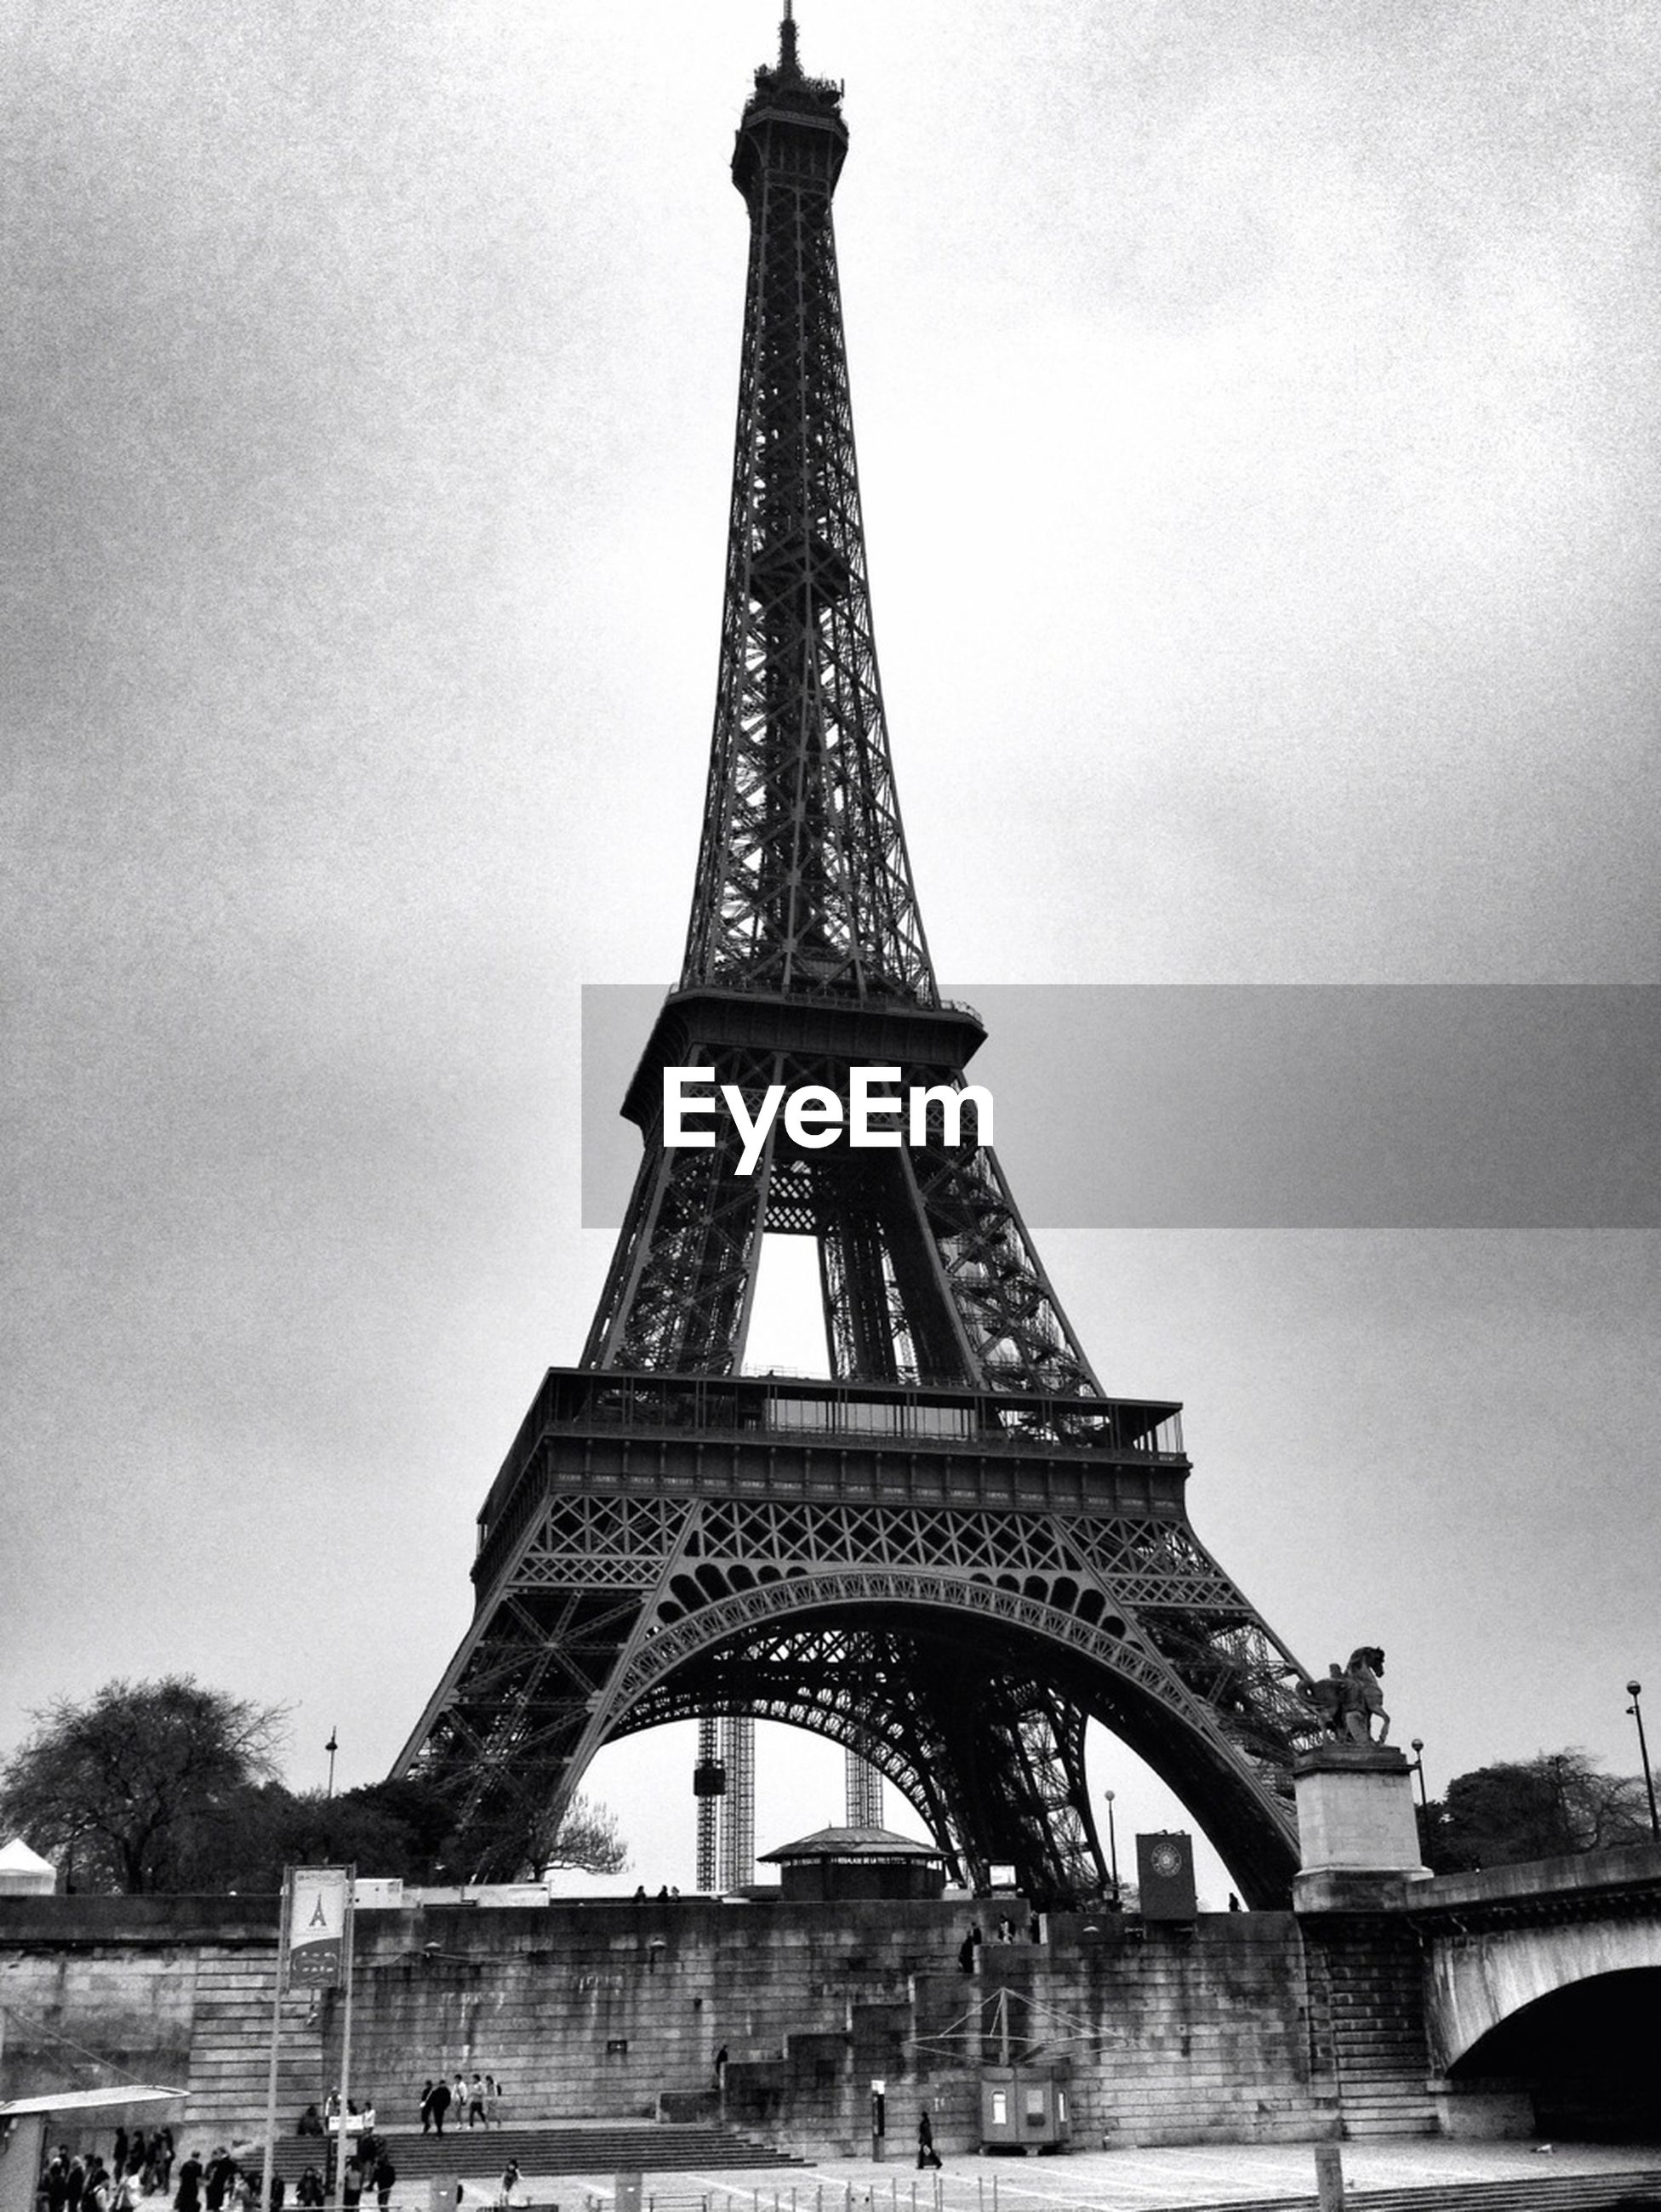 eiffel tower, architecture, built structure, international landmark, famous place, travel destinations, culture, tourism, tower, capital cities, travel, sky, history, metal, tall - high, low angle view, architectural feature, metallic, city, day